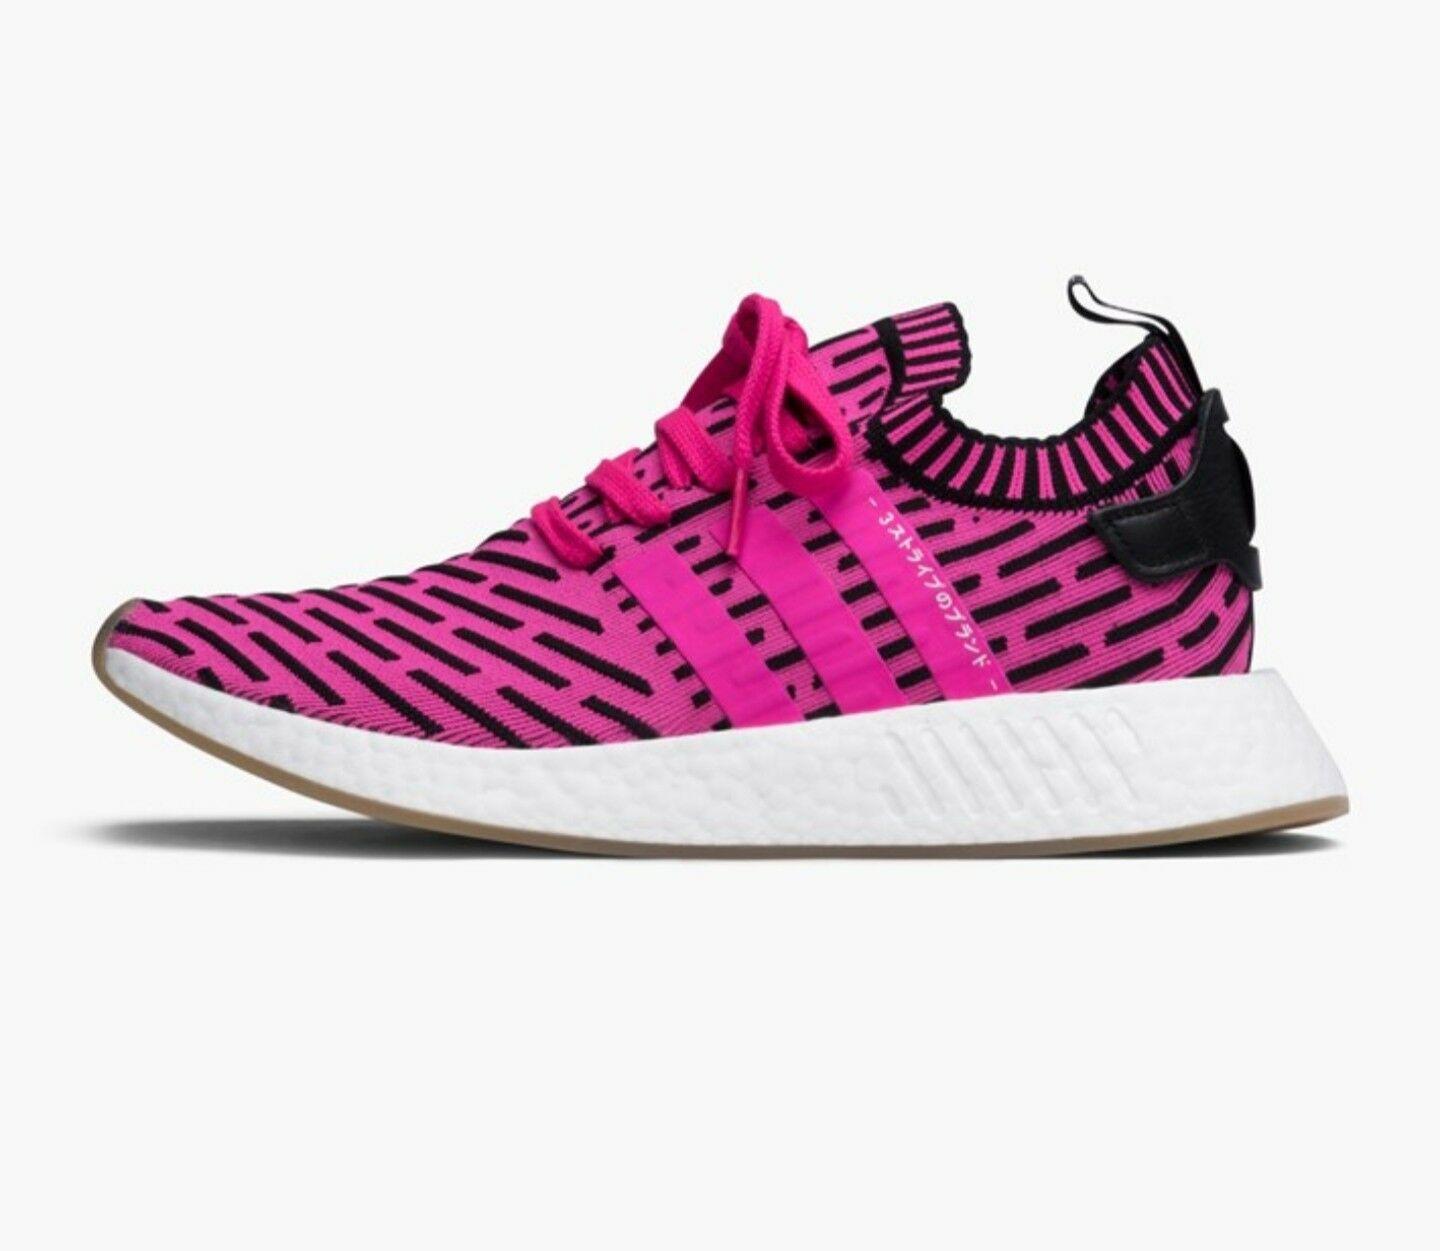 Adidas NMD R2 PK PK PK Mens Size US 9 BY9697 MSRP  170 Brand New Authentic 081f2f